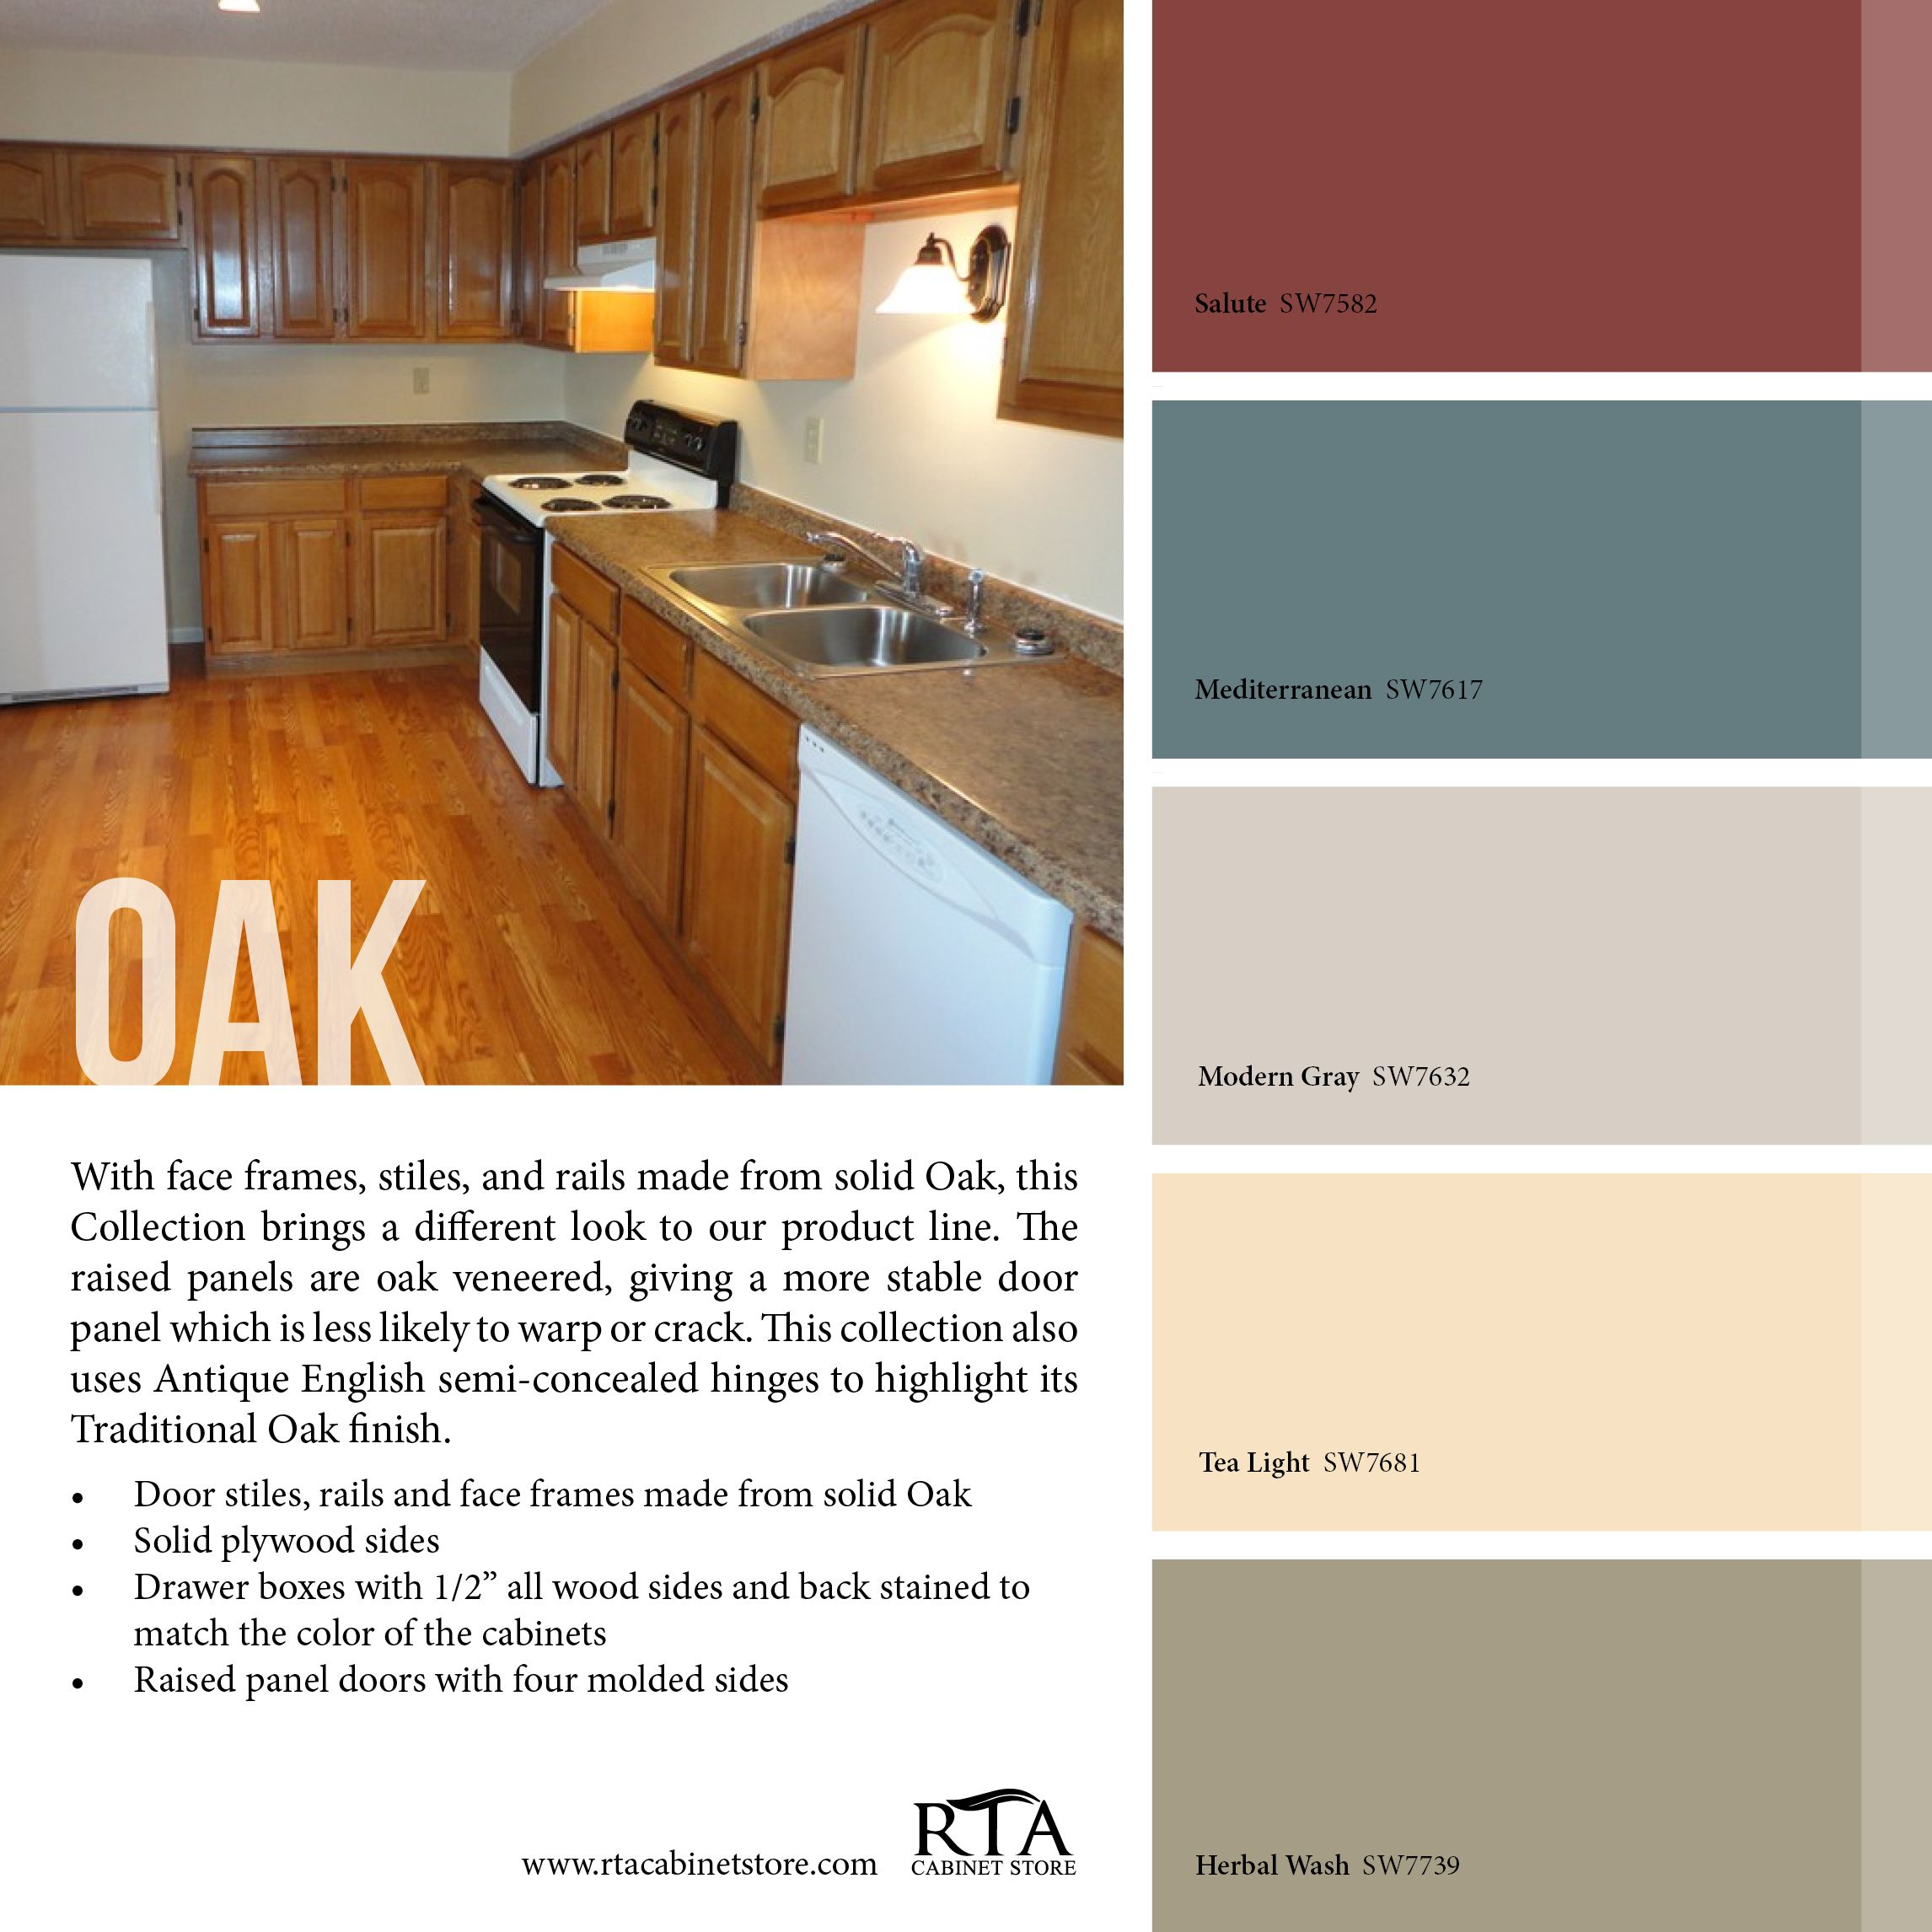 Color Palette To Go With Our Oak Kitchen Cabinet Line